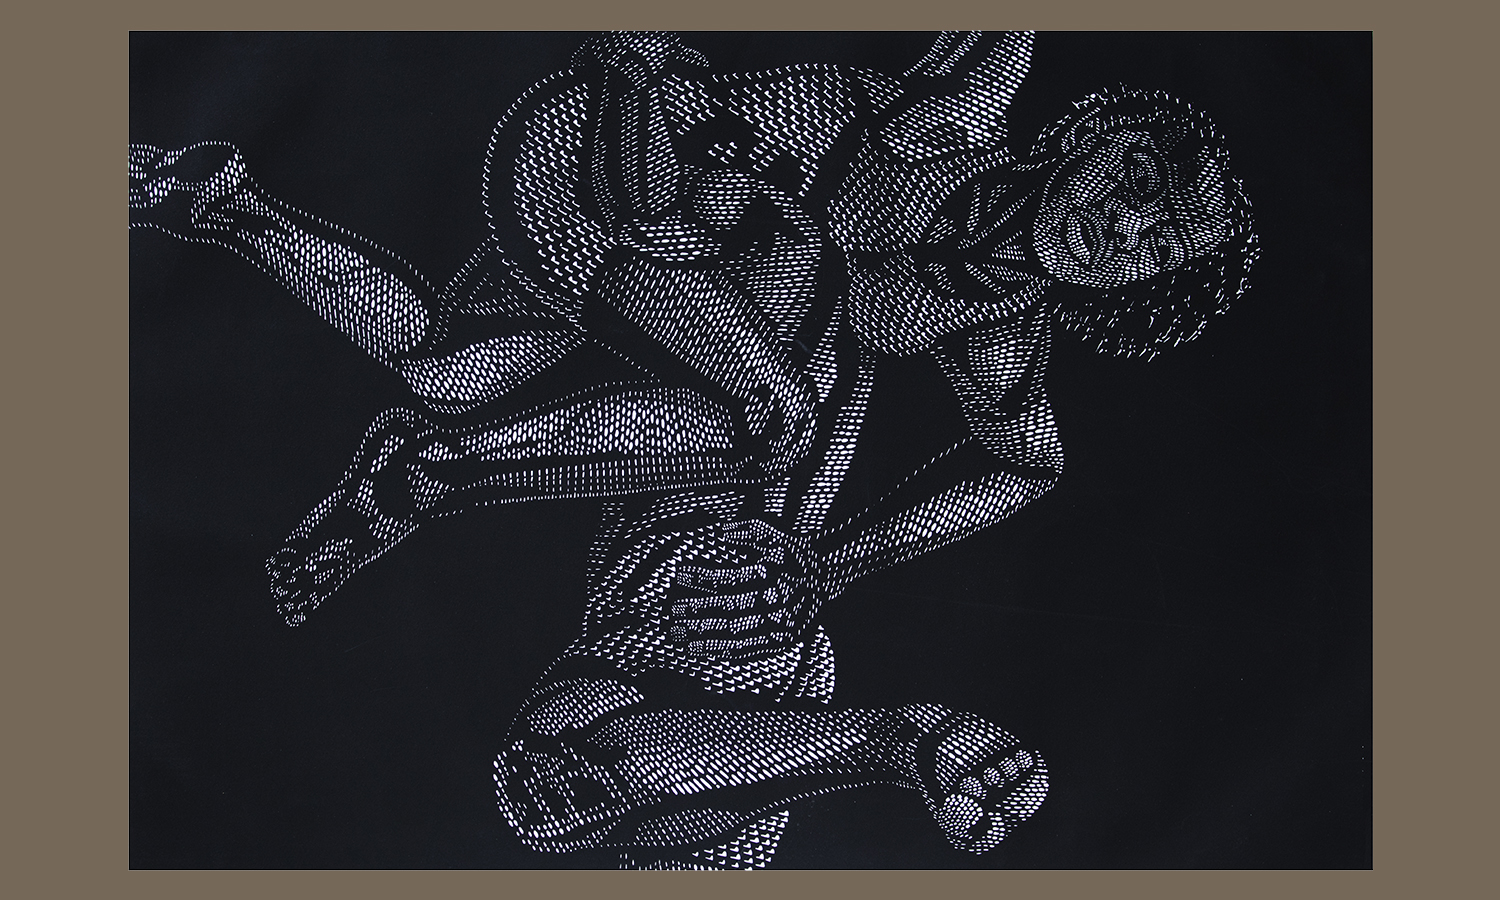 """Blissful Swing III,"" Linocut, by Vuyile Cameron Voyiya, 1990-1999, Gift of Edward T. Pollack '55 in honor of Mark and Mary Gearan in recognition of their strong support for the performing arts"